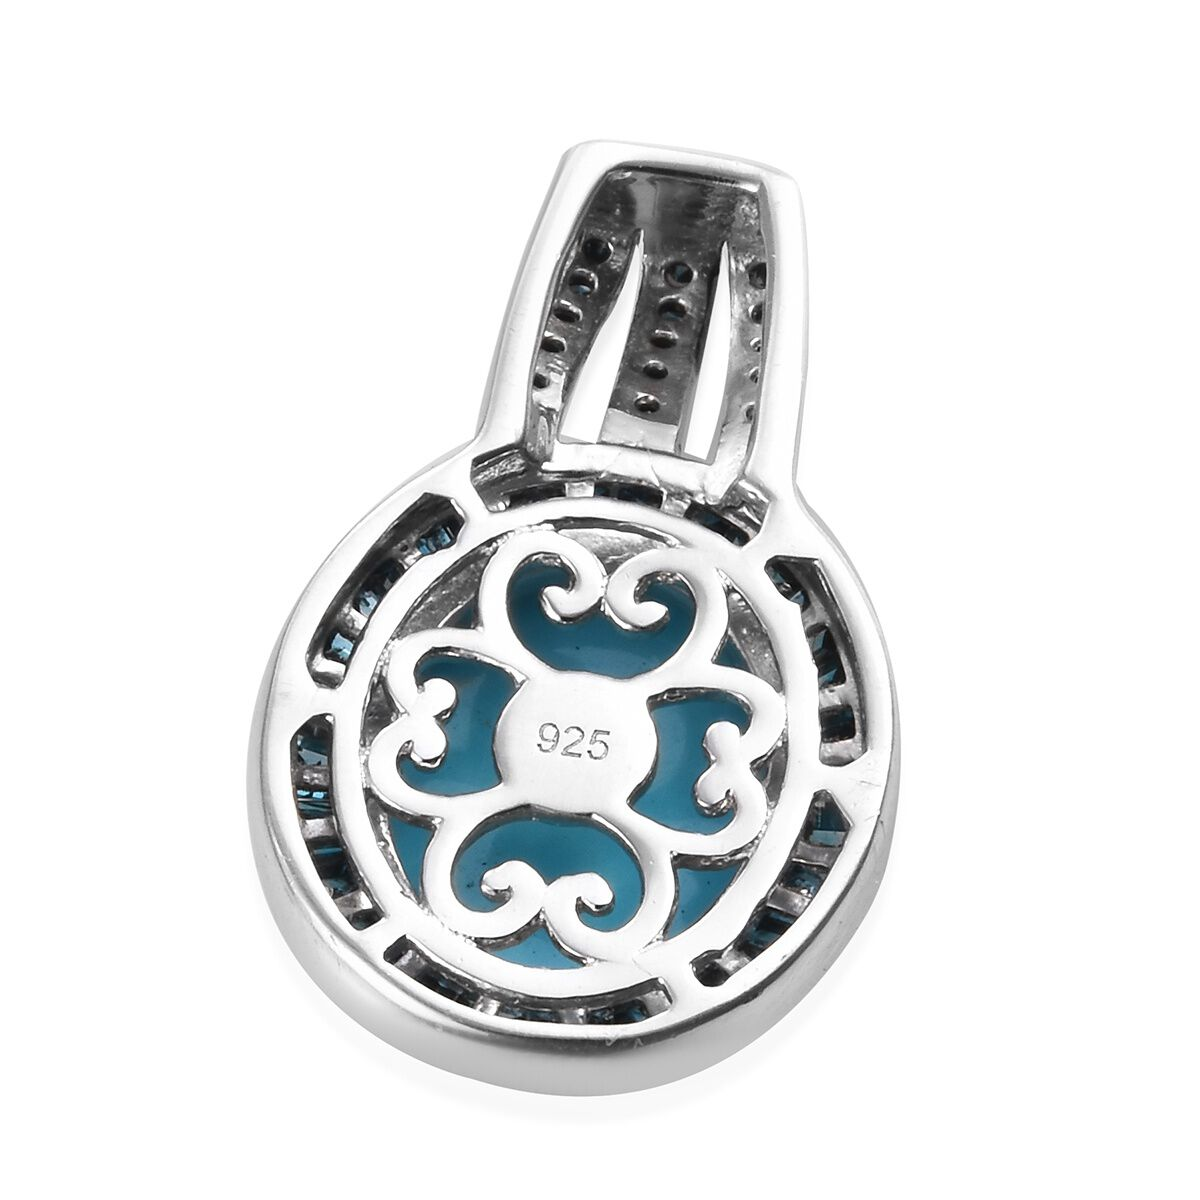 4.25 ct TJC Womens 925 Sterling Silver Platinum Plated Sleeping Beauty Turquoise Blue Diamond Halo Pendant